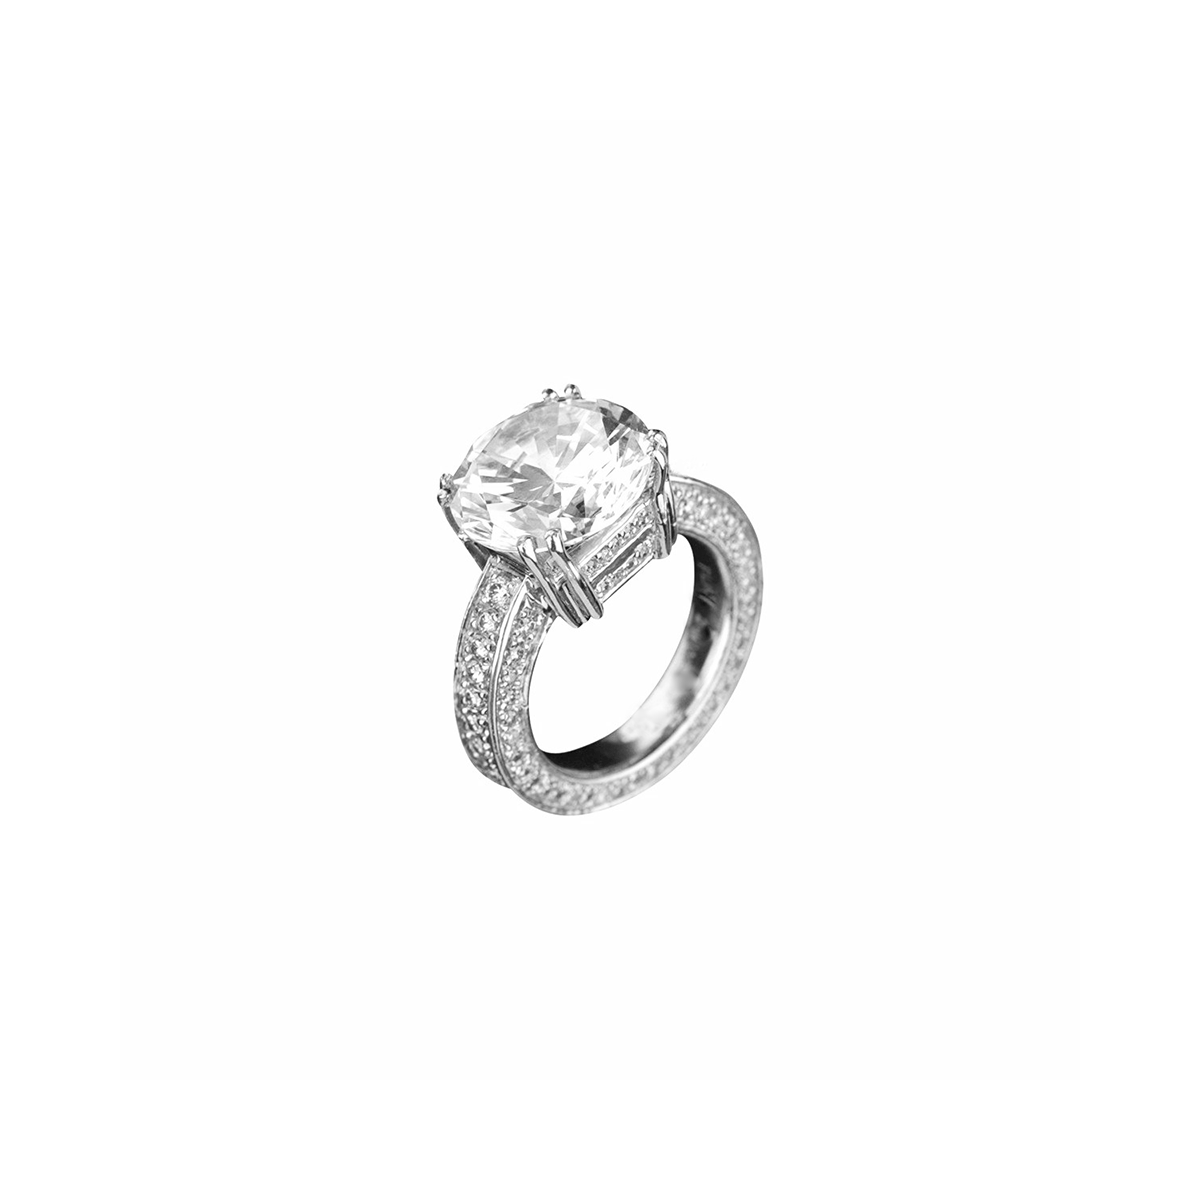 Agape - Platinum Diamond Engagement Ring